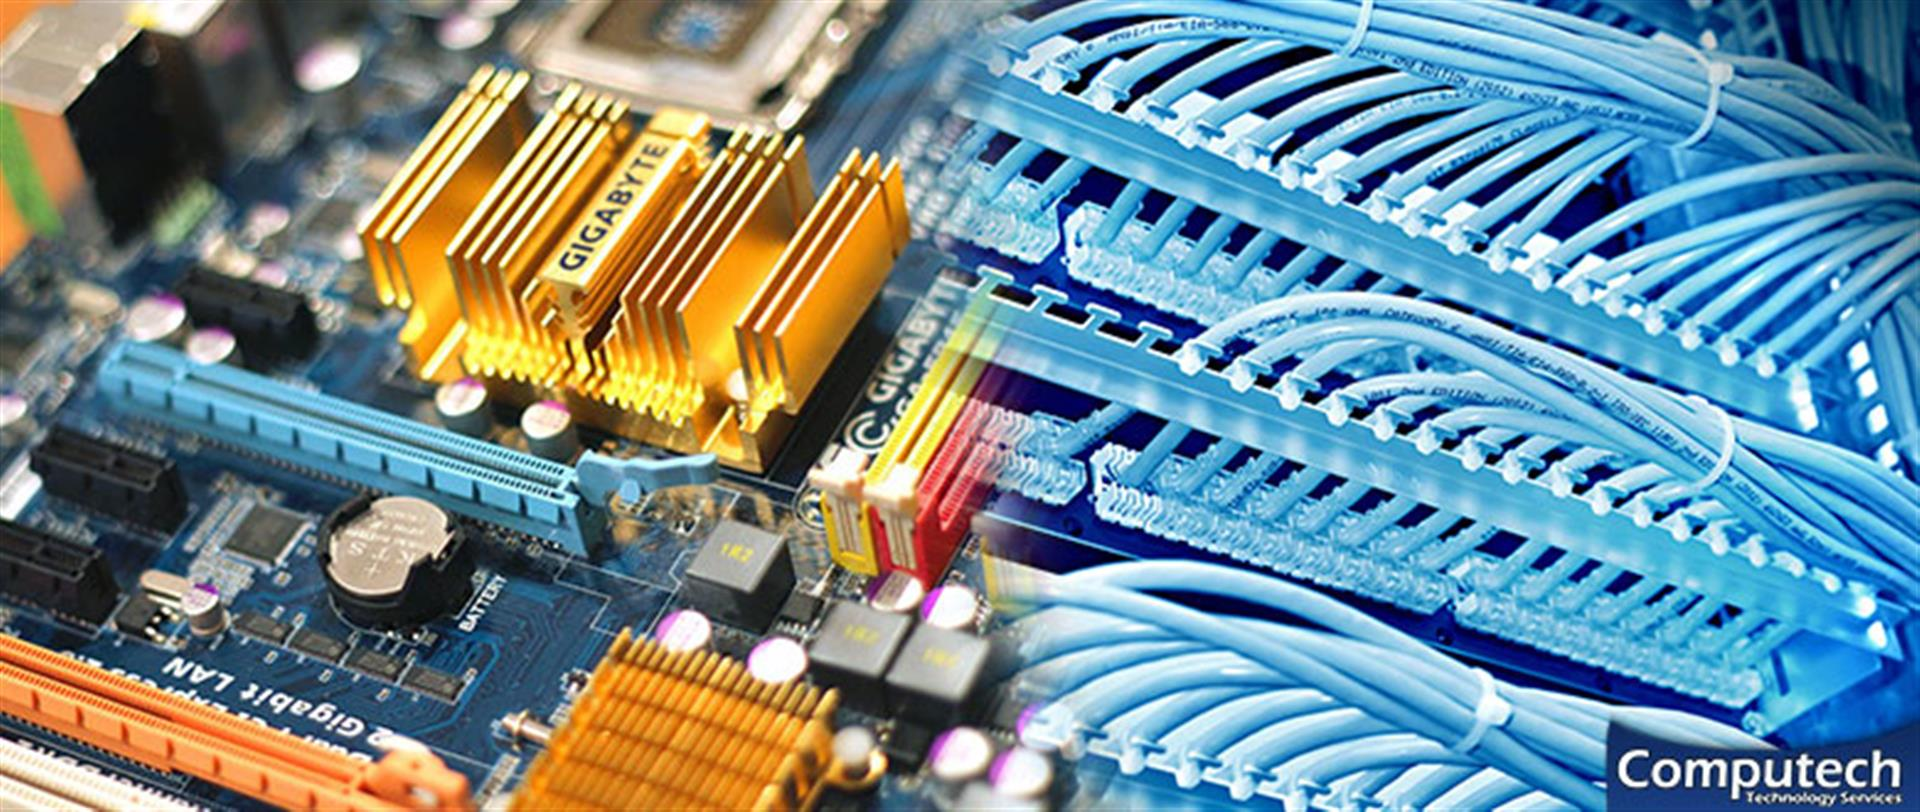 Pooler Georgia On-Site Computer PC & Printer Repair, Networking, Voice & Data Cabling Solutions